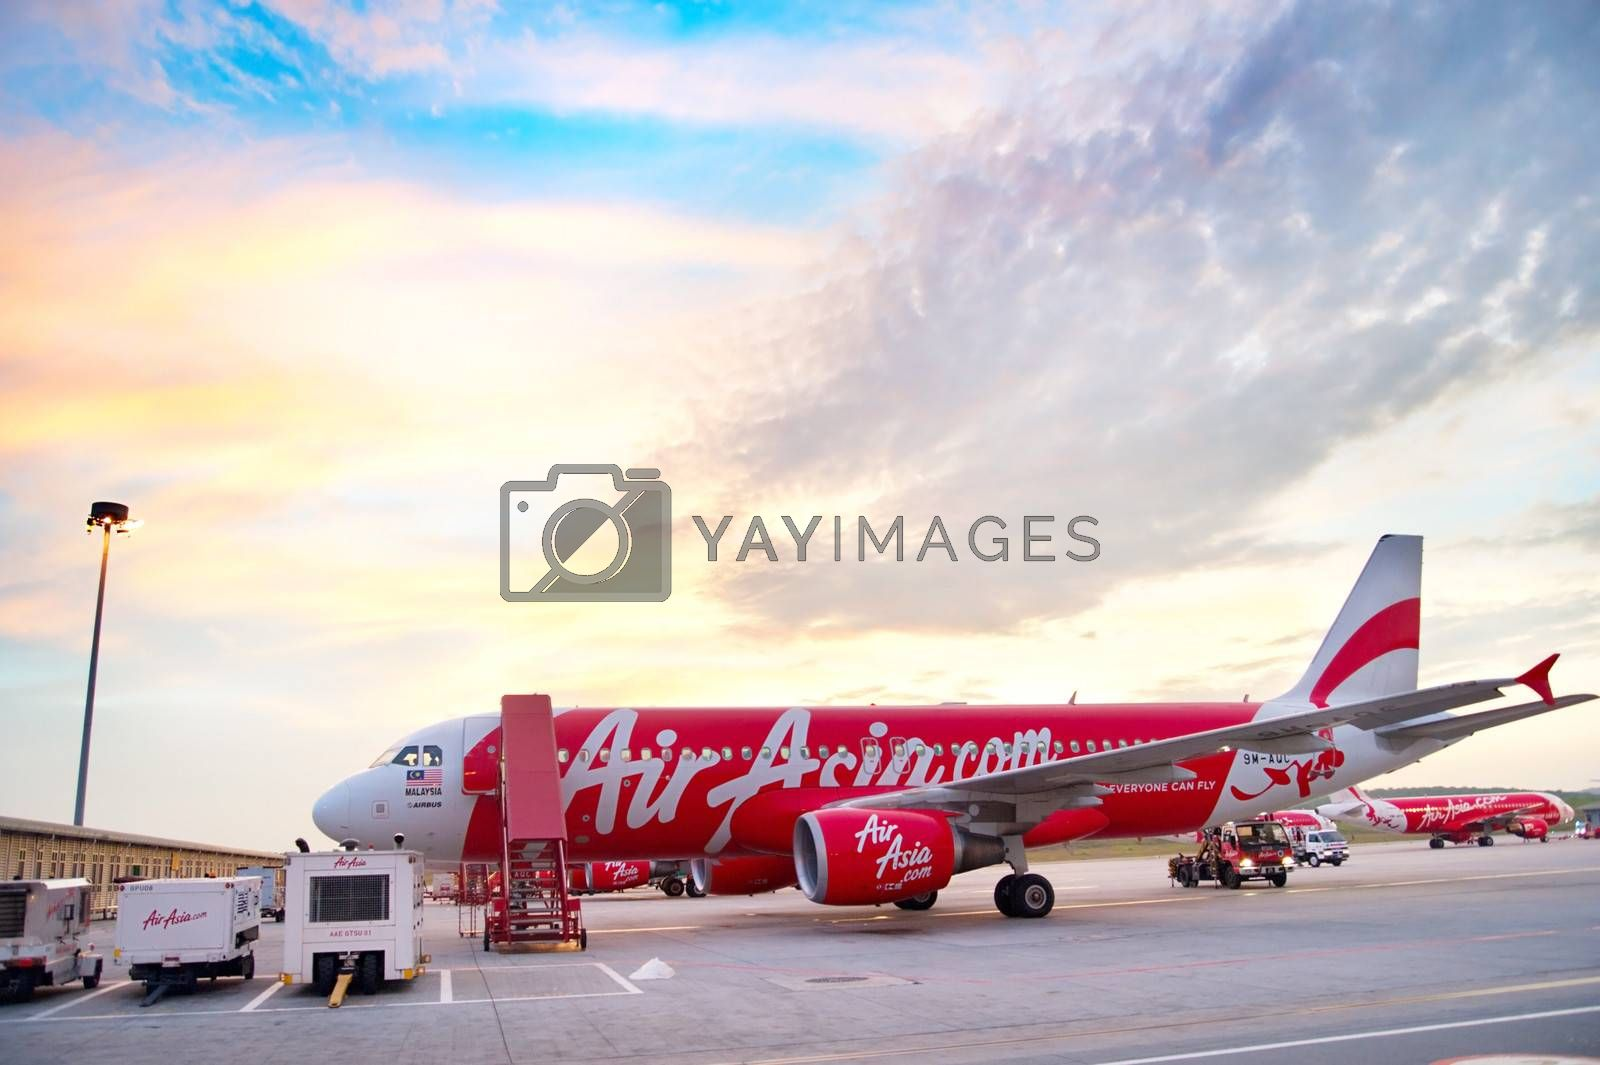 Kuala Lumpur, Malaysia - May 14, 2013: AirAsia Jet airplane in Kuala Lumpur airport in Kuala Lumpur. Its been named as world's best low-cost airline, operates scheduled flights to 78 destinations